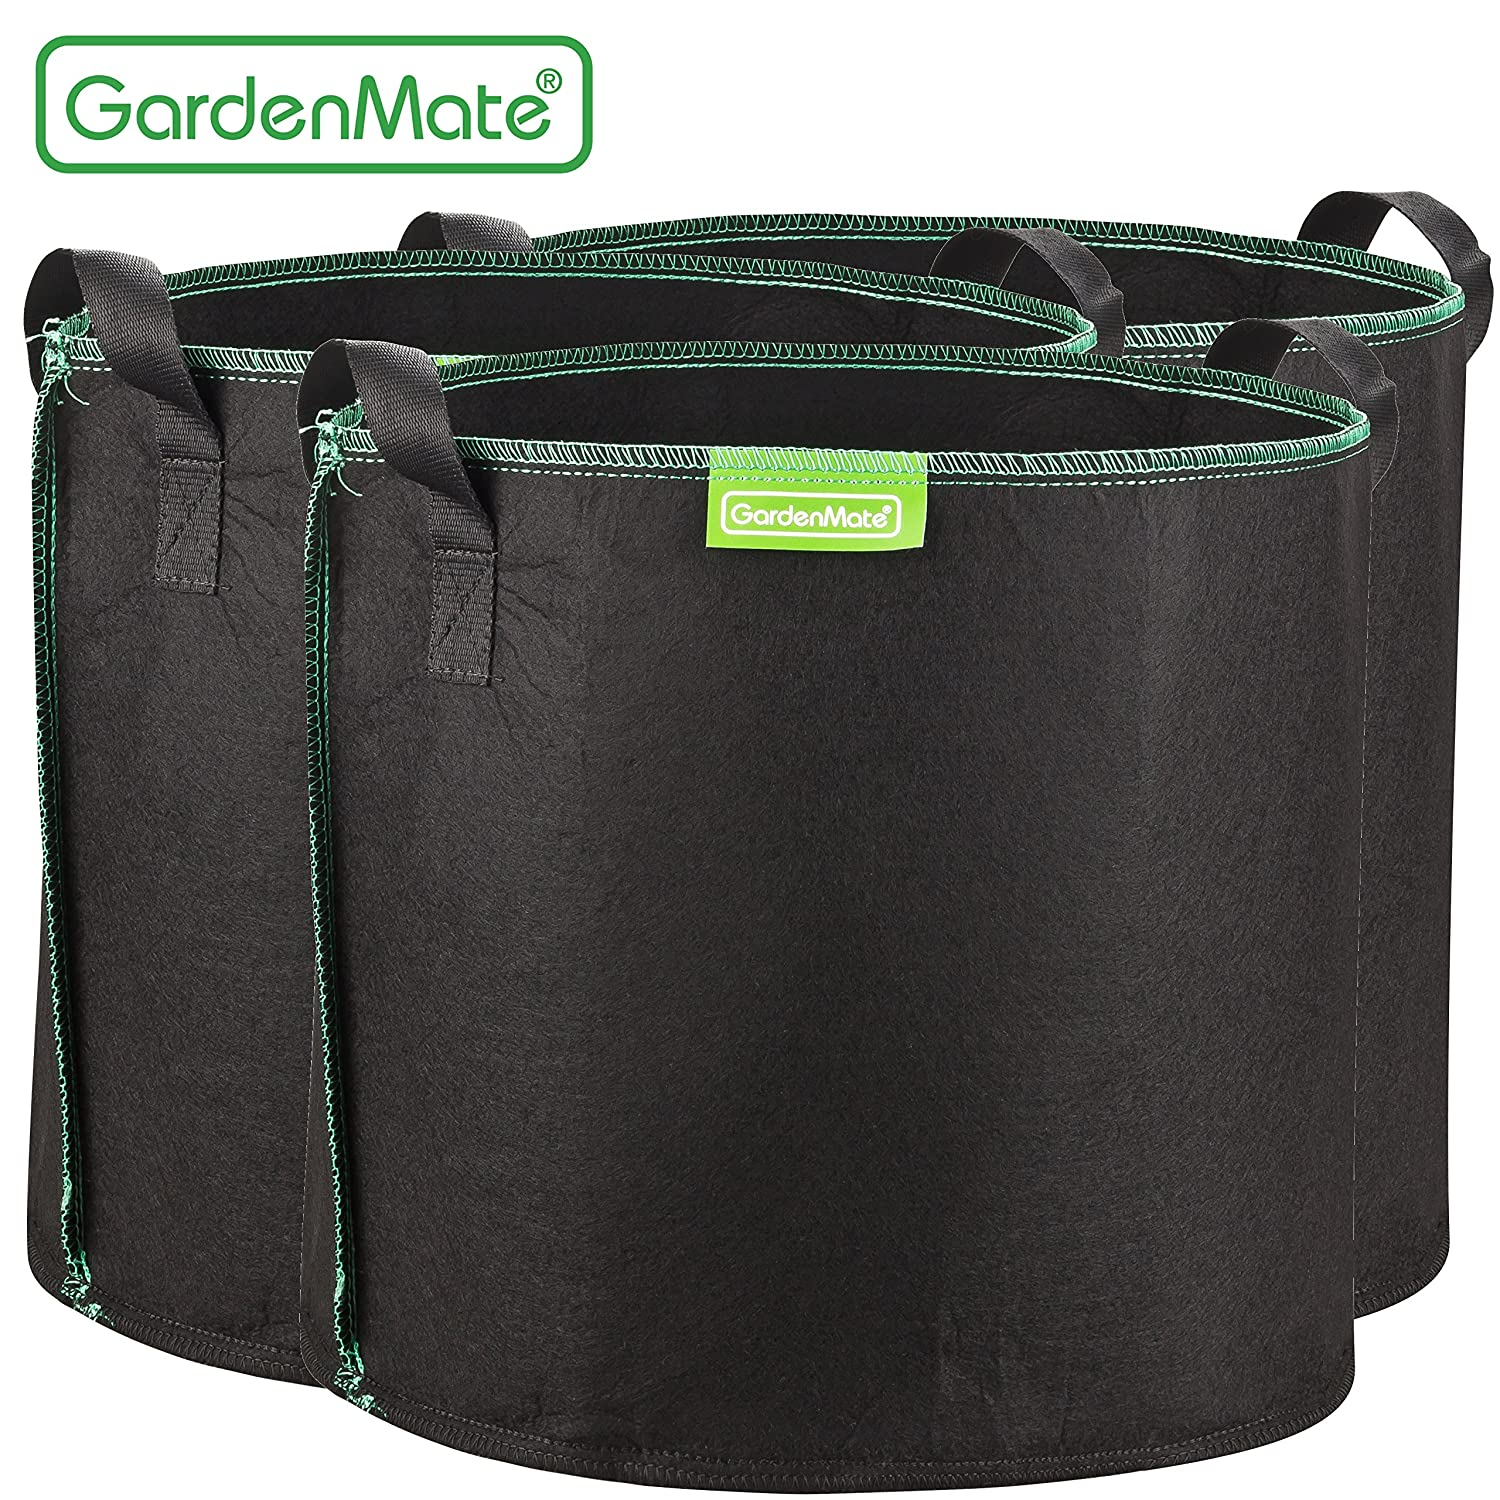 GardenMate 3-Pack 8 Gallons Planting Grow Bags Made Of Growth Friendly Felt